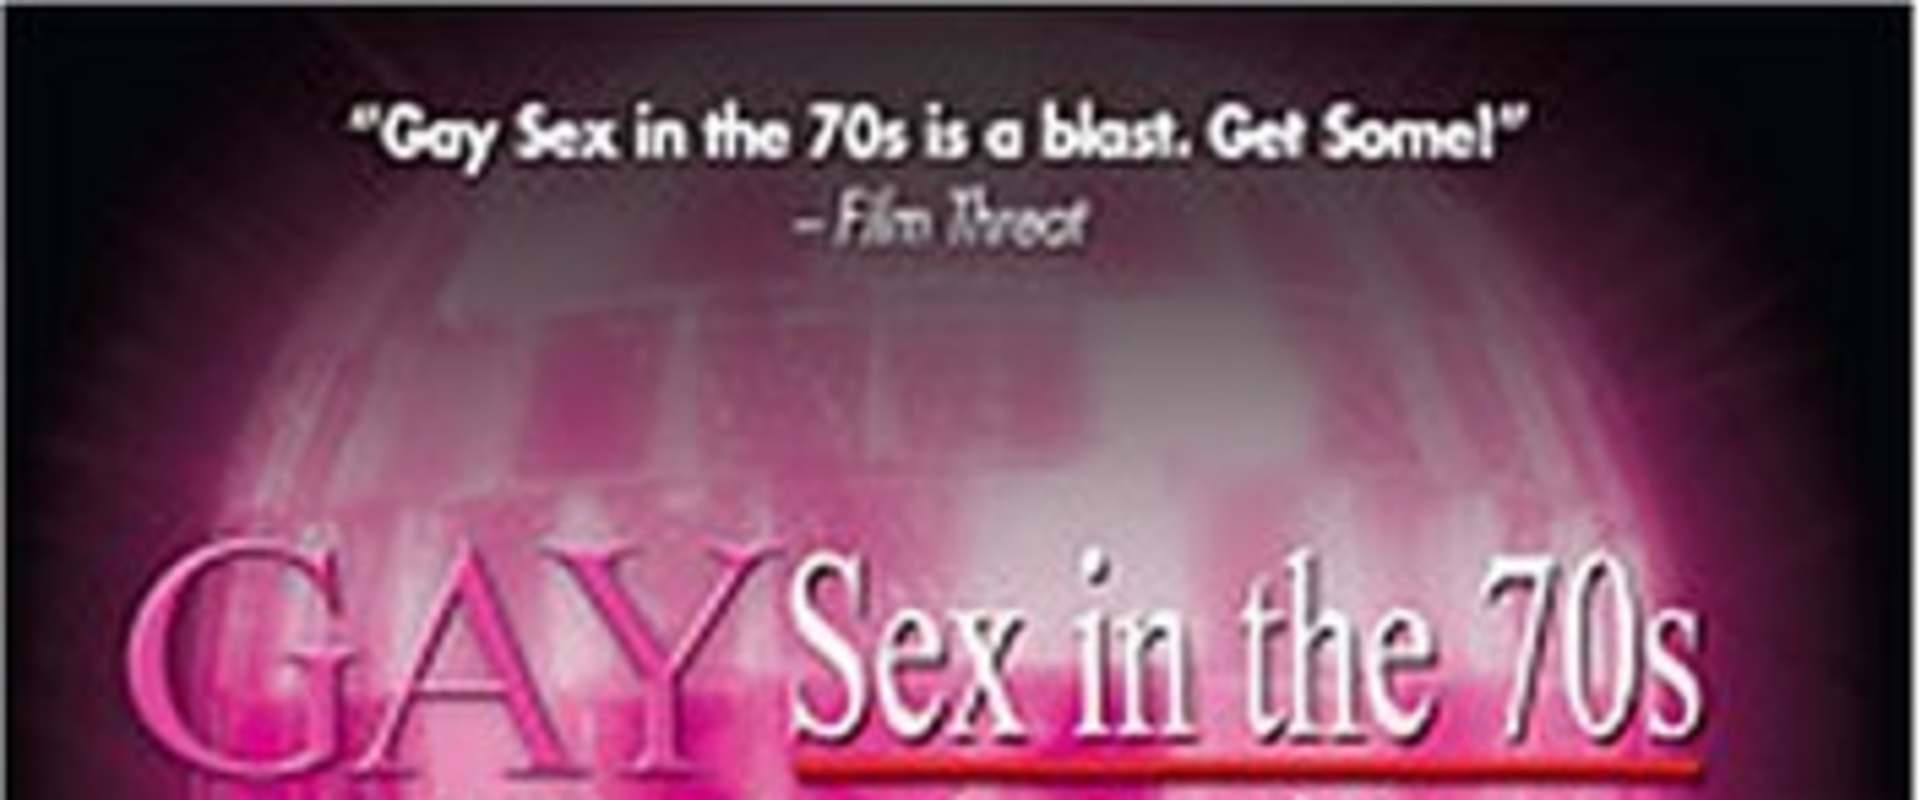 Gay Sex in the 70s background 2